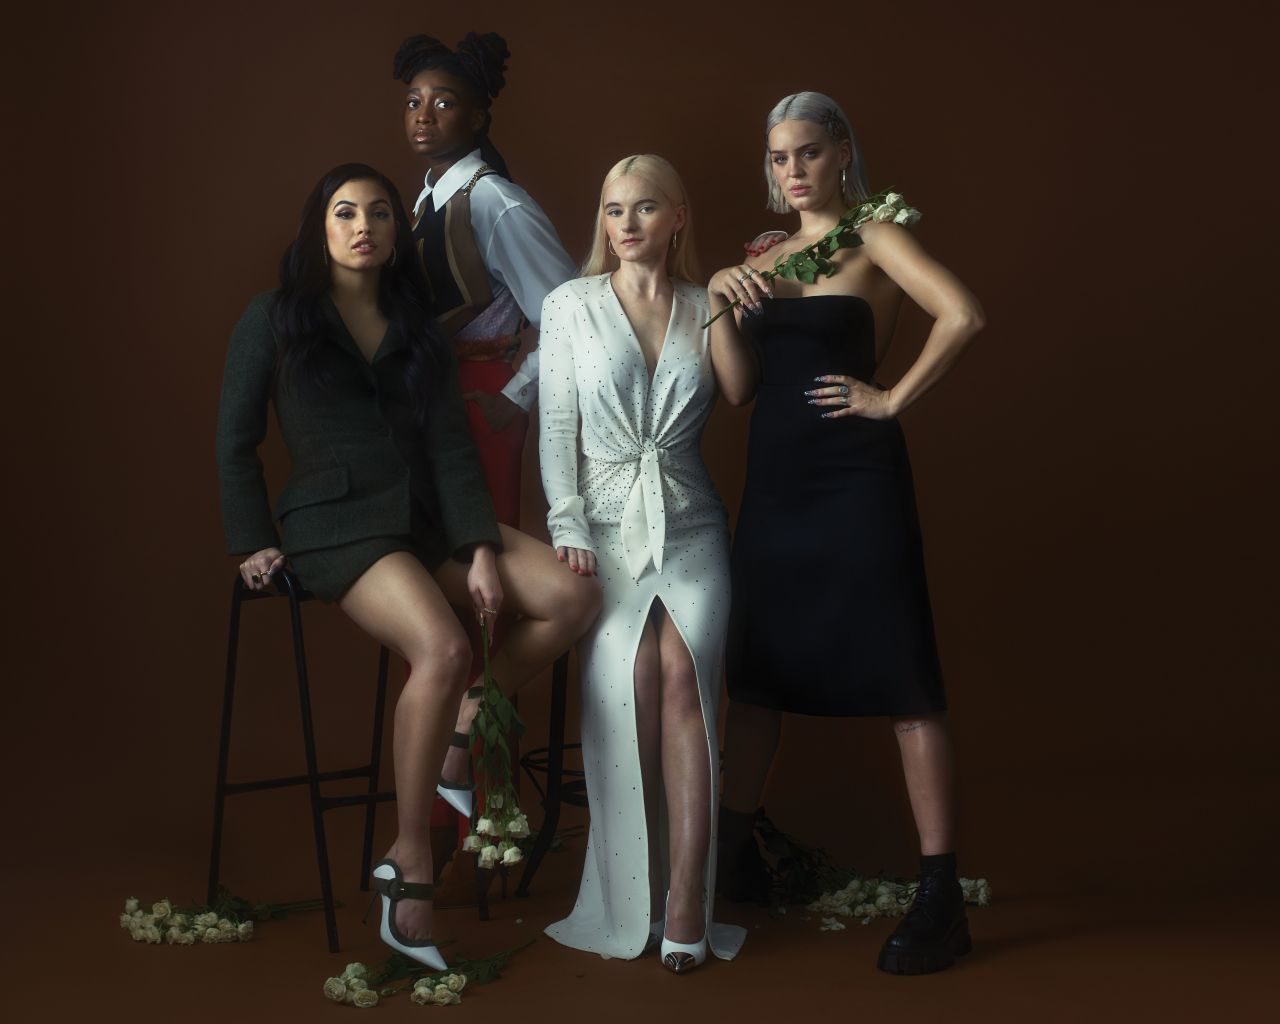 Mabel Mcvey Little Simz Grace Chatto And Anne Marie Photoshoot For V Magazine 2019 V Magazine Mabel Celebrities